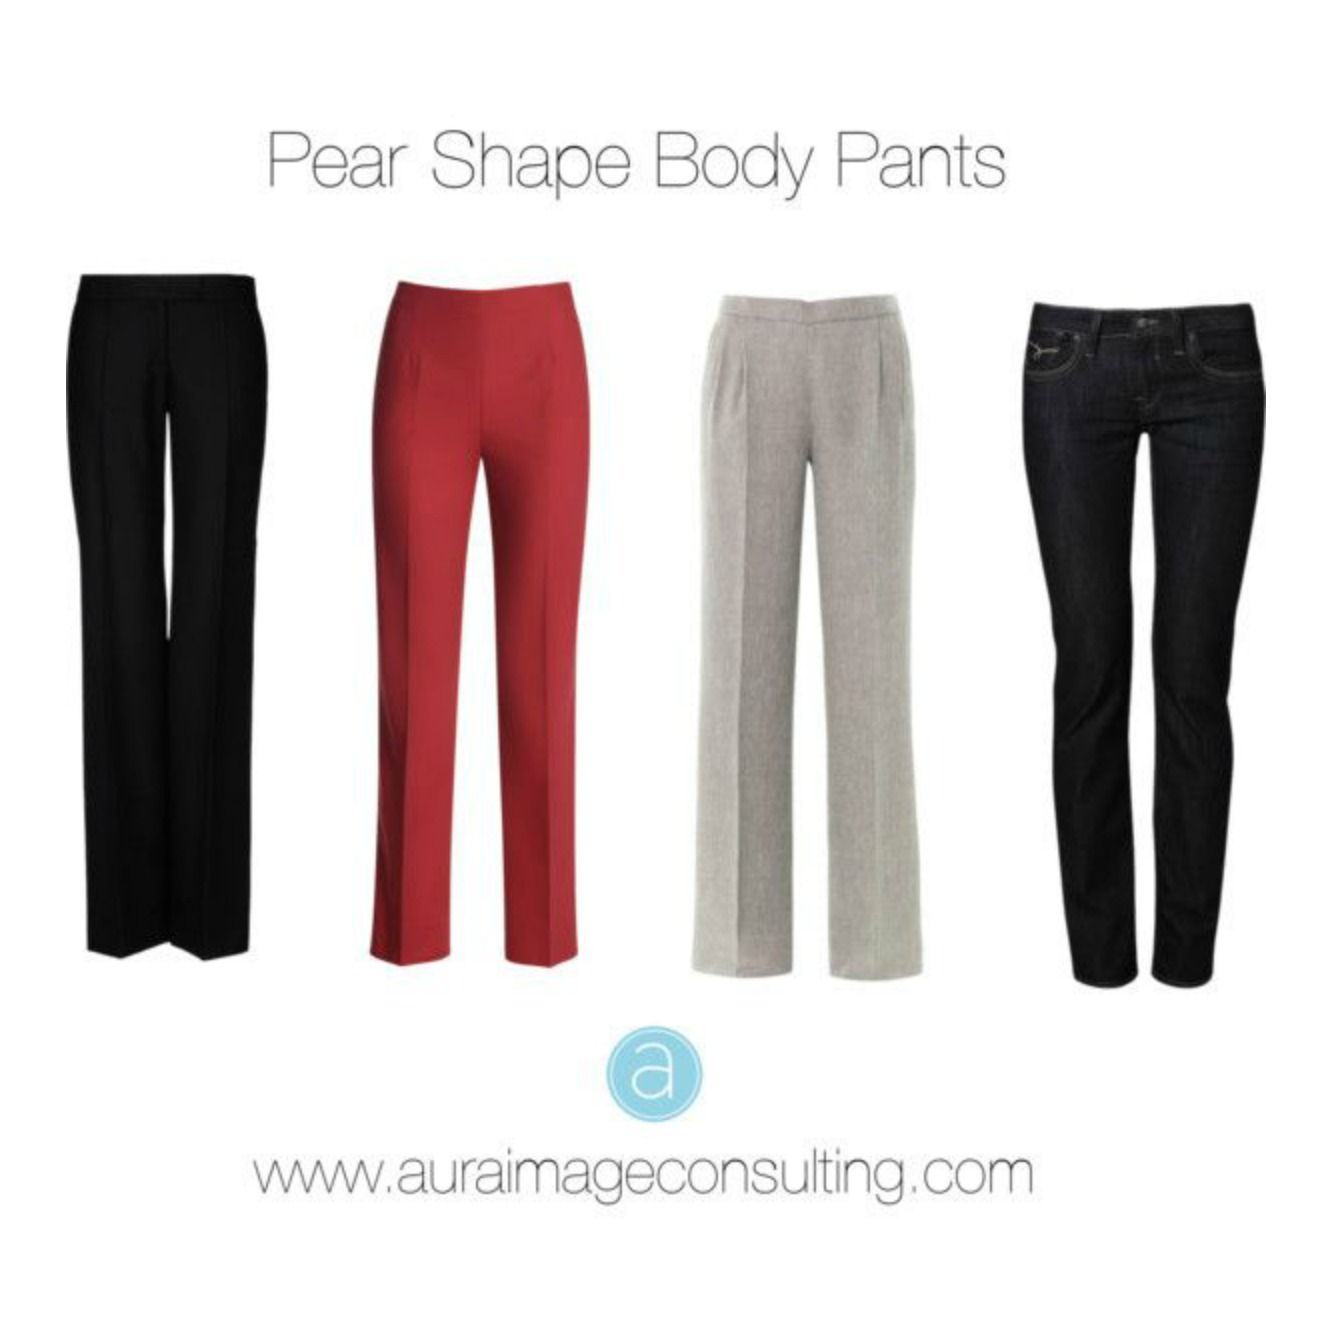 Pants and skirts for those with wide hips, thighs, and bum!